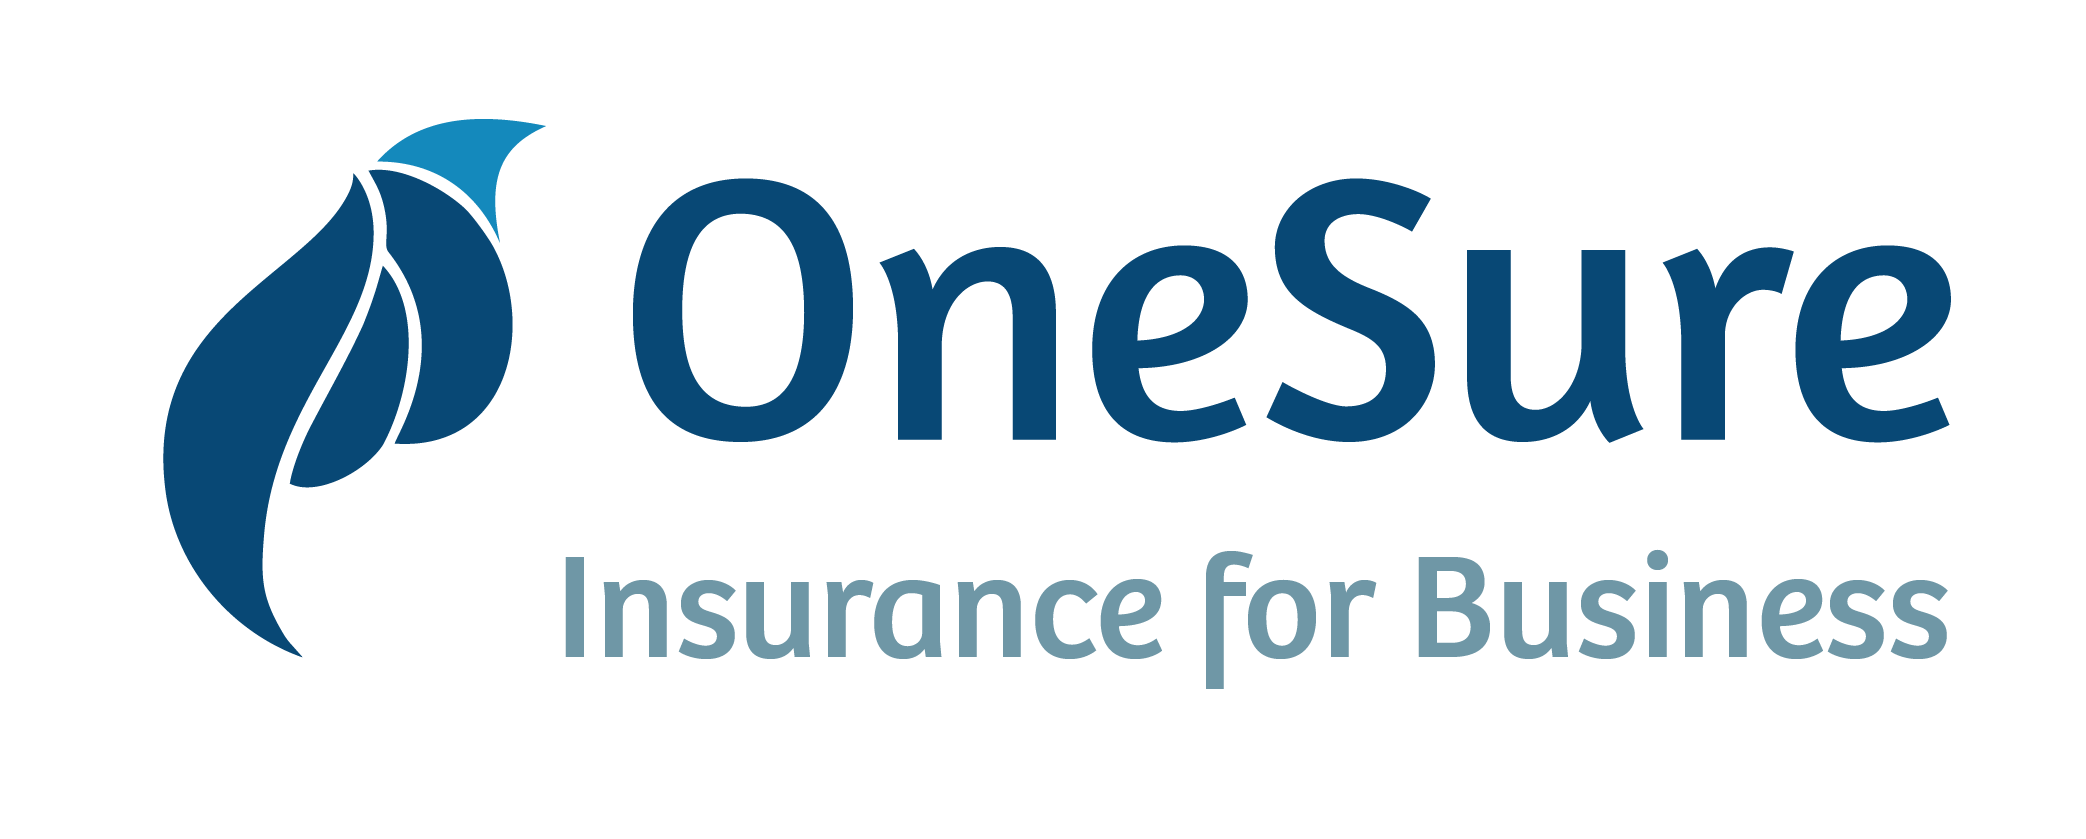 OneSure Insurance for Business Logo